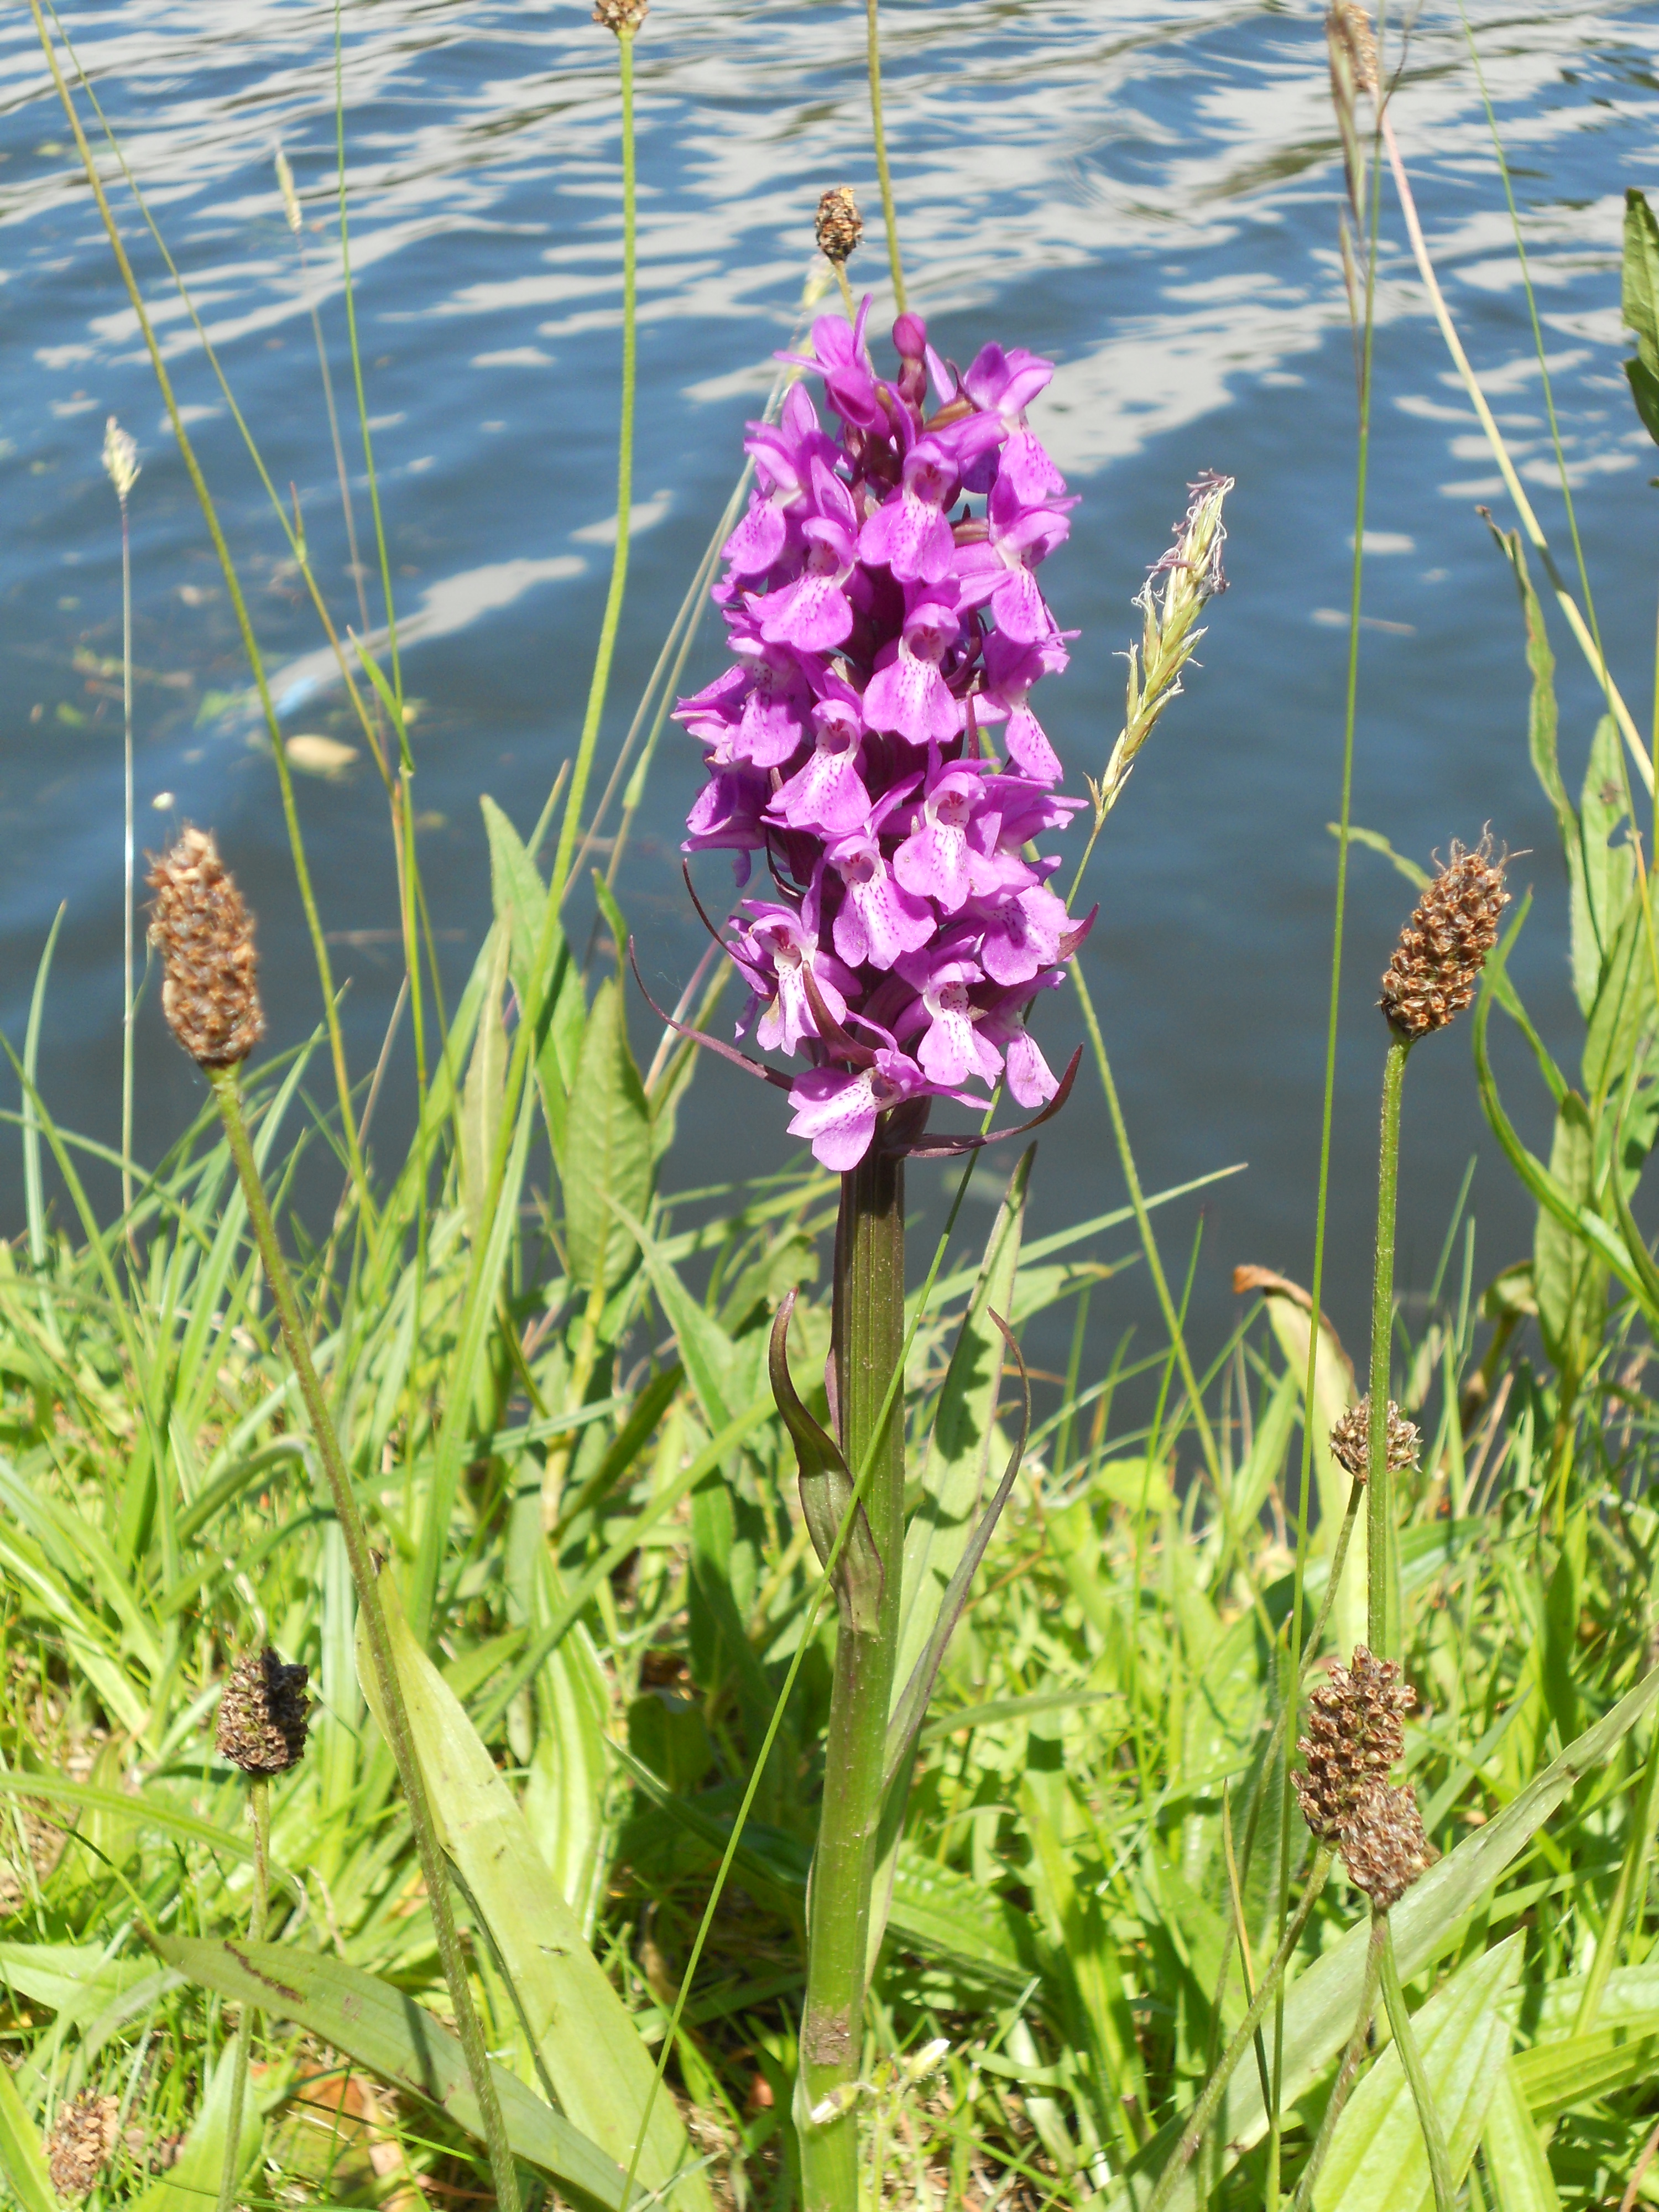 Southern Marsh Orchid File:southern Marsh Orchid on